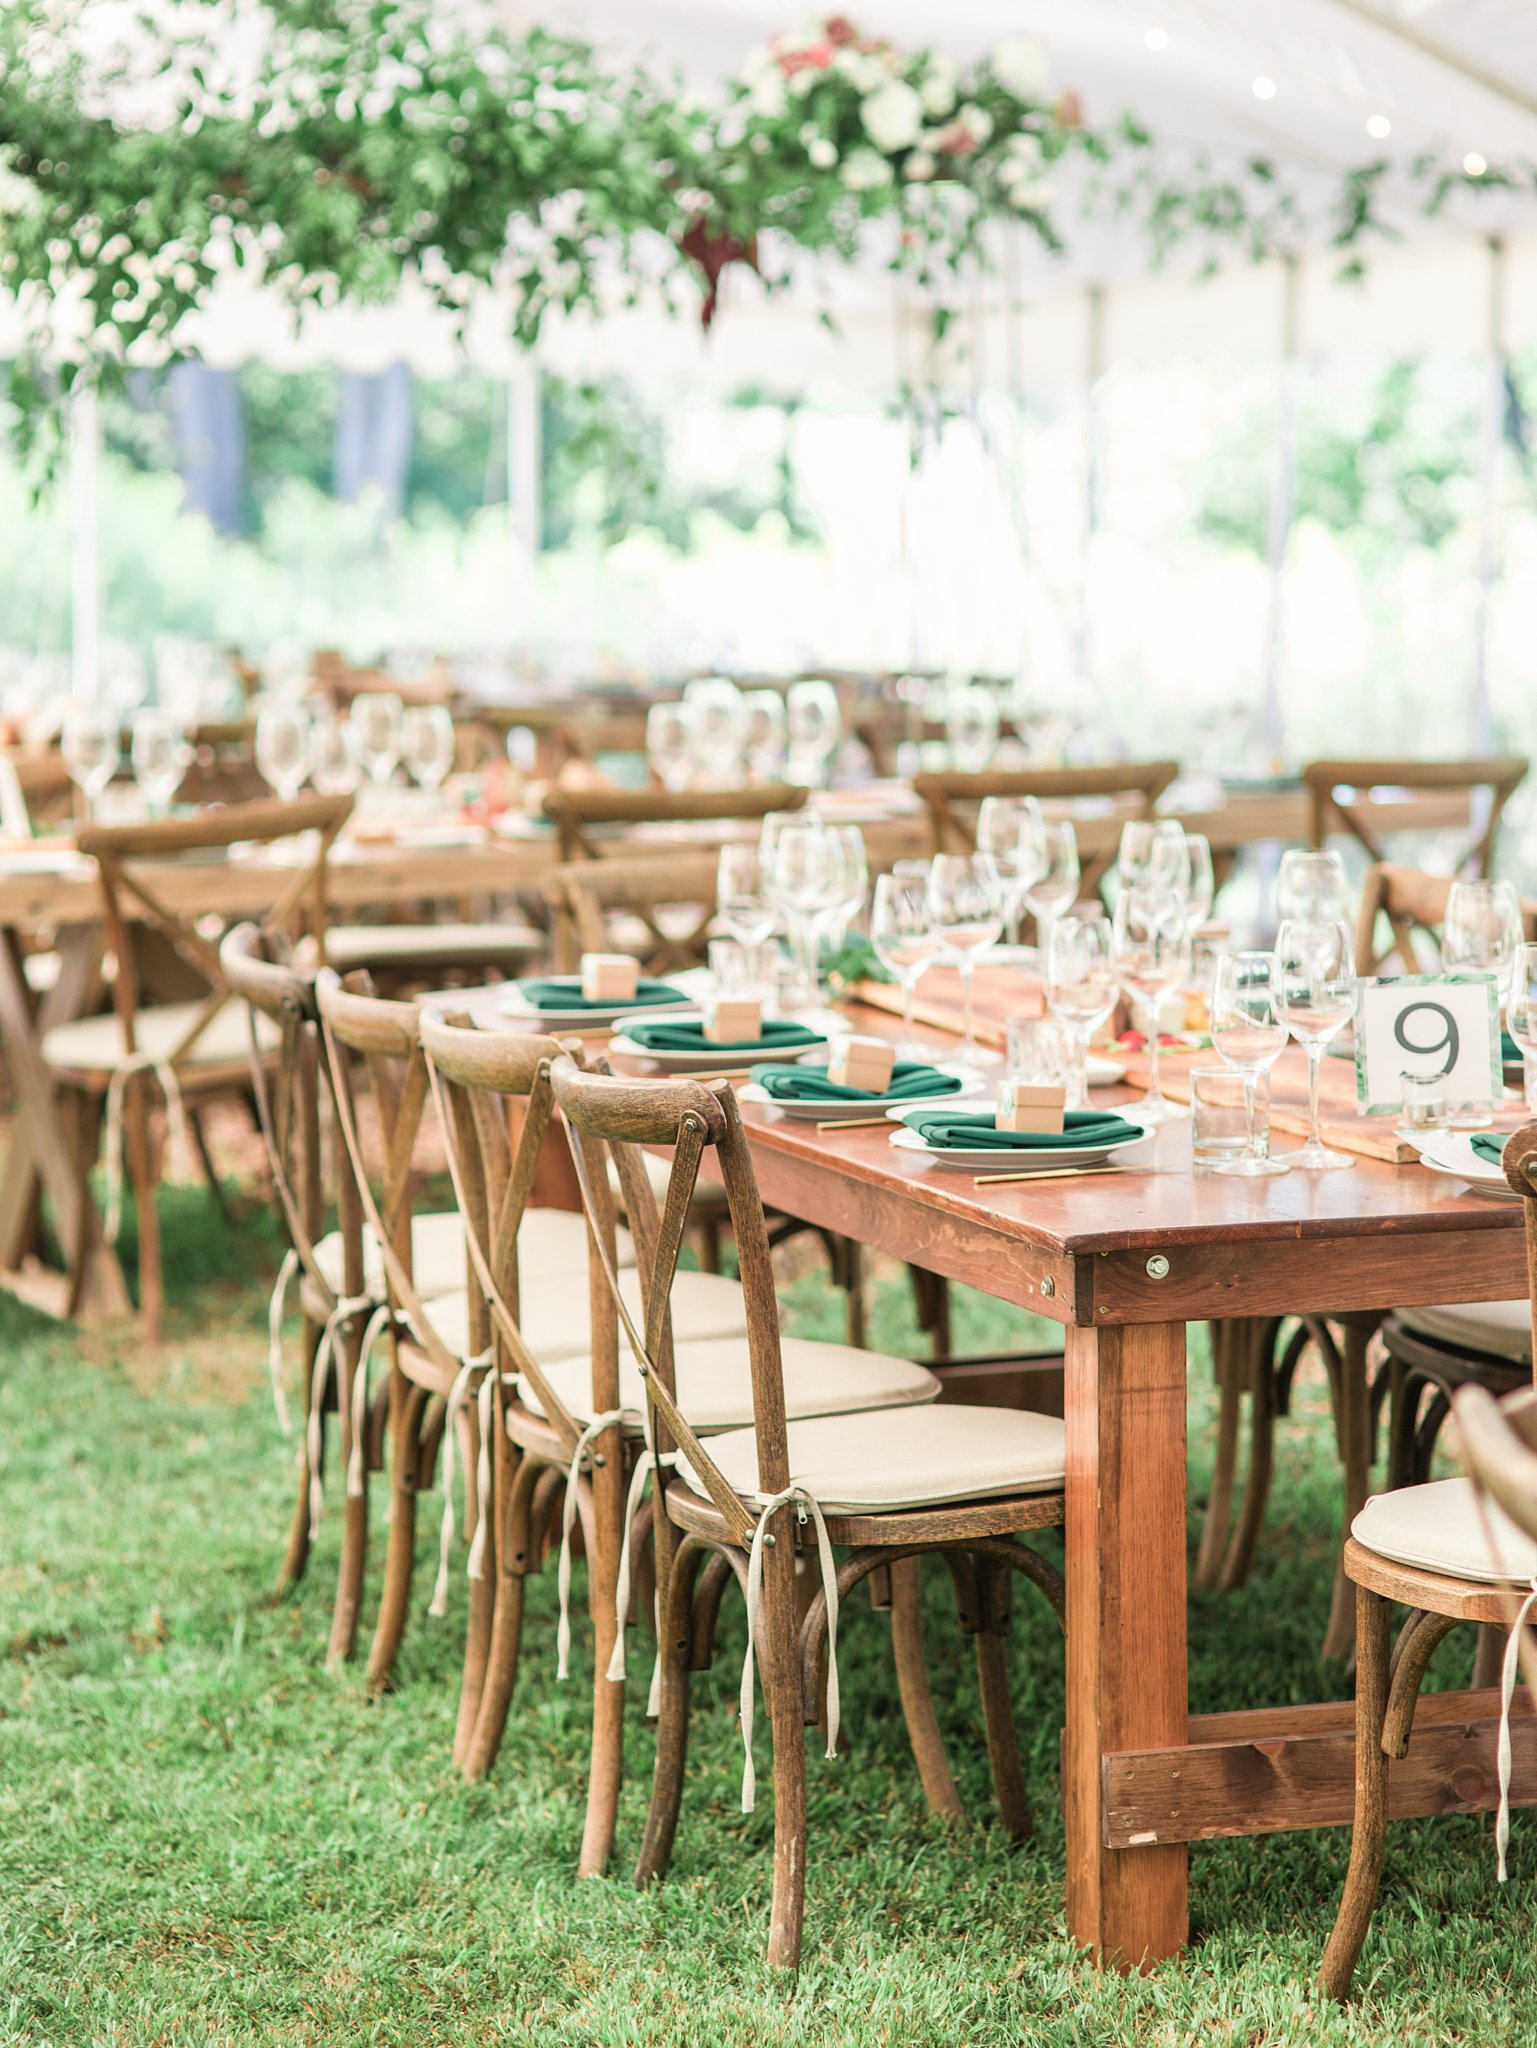 Vineyard chair, wooden table, Private Estate Wedding Photos, Amy Pinder Photography